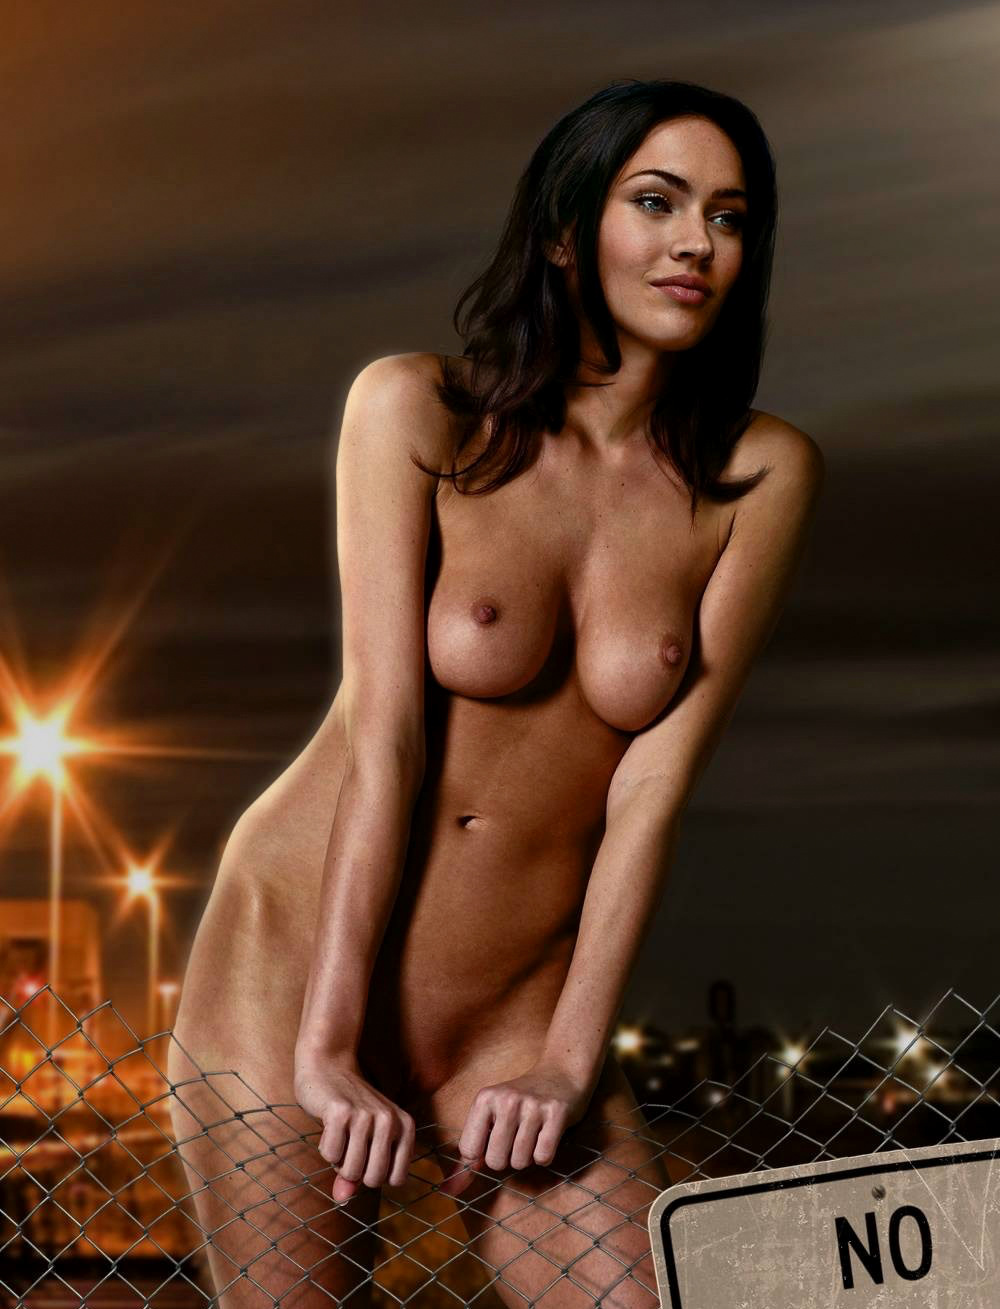 The girl in transformers naked, black party kc reviews